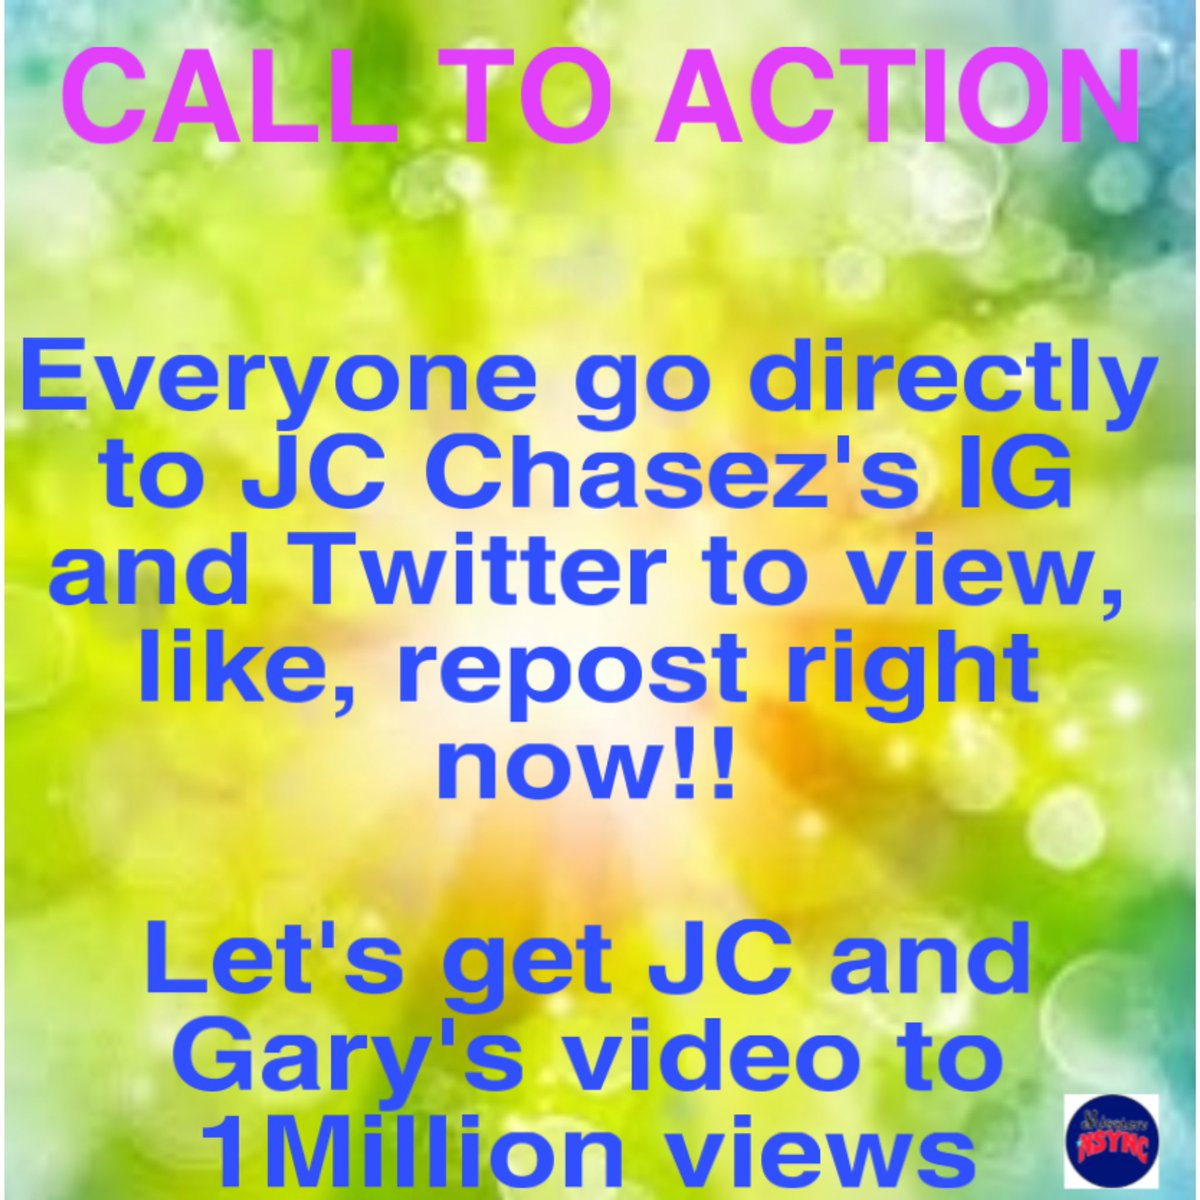 CALL TO ACTION!  Everyone go directly to JC Chasez Instagram and Twitter accounts to view, like, repost right now!!  Let's get their video to 1Million views and trending  #chasezallday #backforgood #wewantyouback #croonersessions #jcchasez #nsync #garybarlow #missionNSYNC